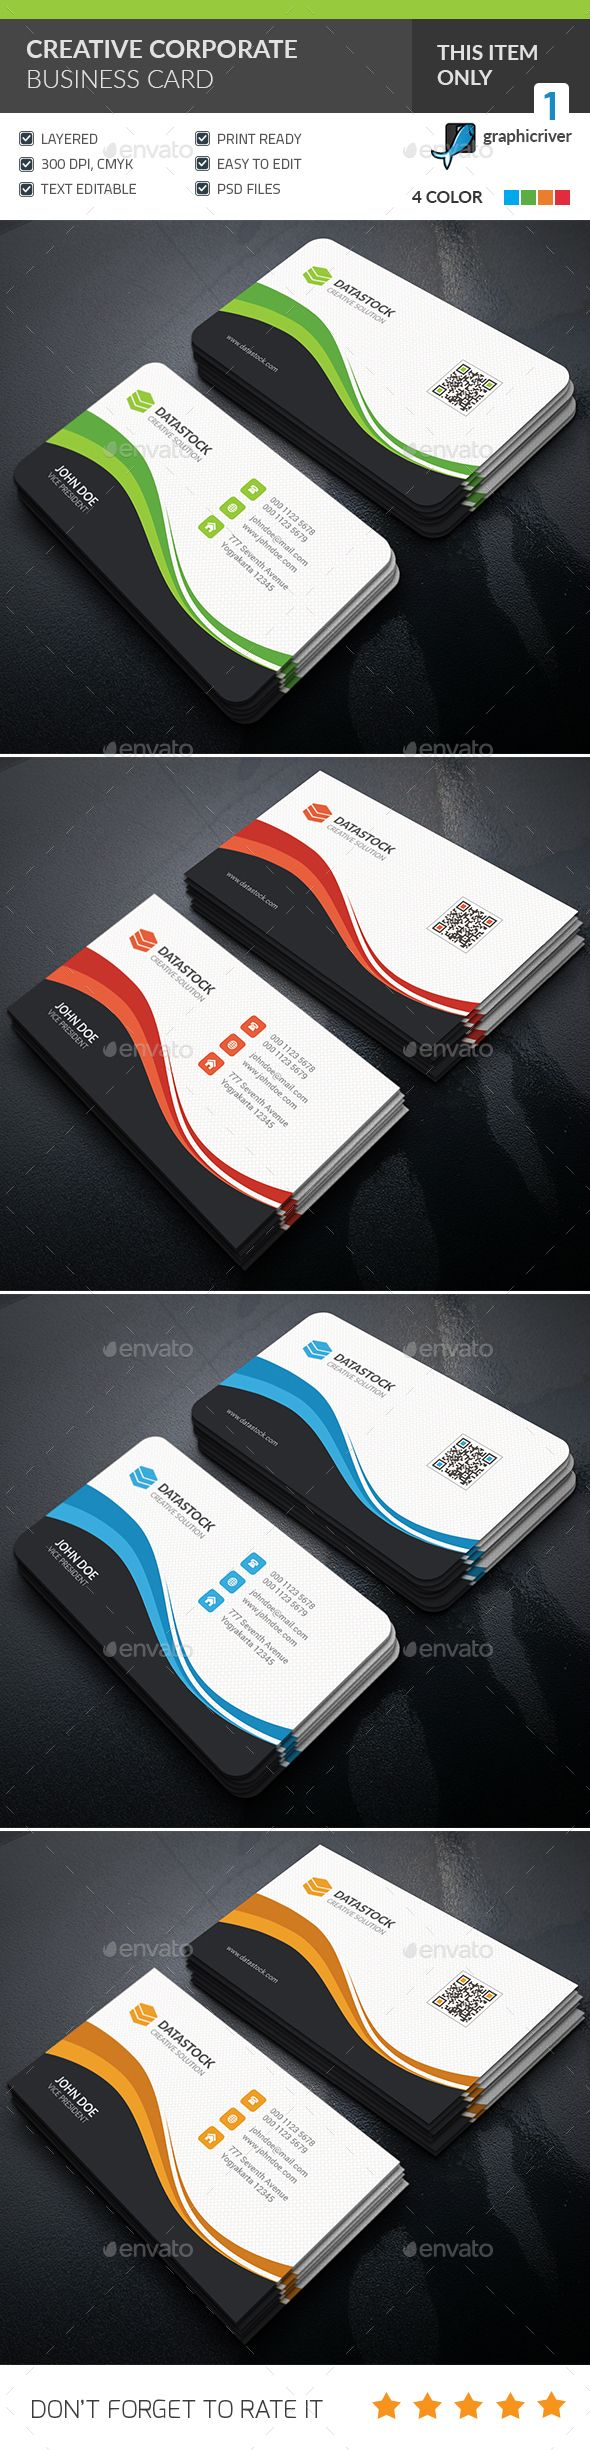 Creative Corporate Business Card Template PSD. Download here: http://graphicriver.net/item/creative-corporate-business-card/15874362?ref=ksioks